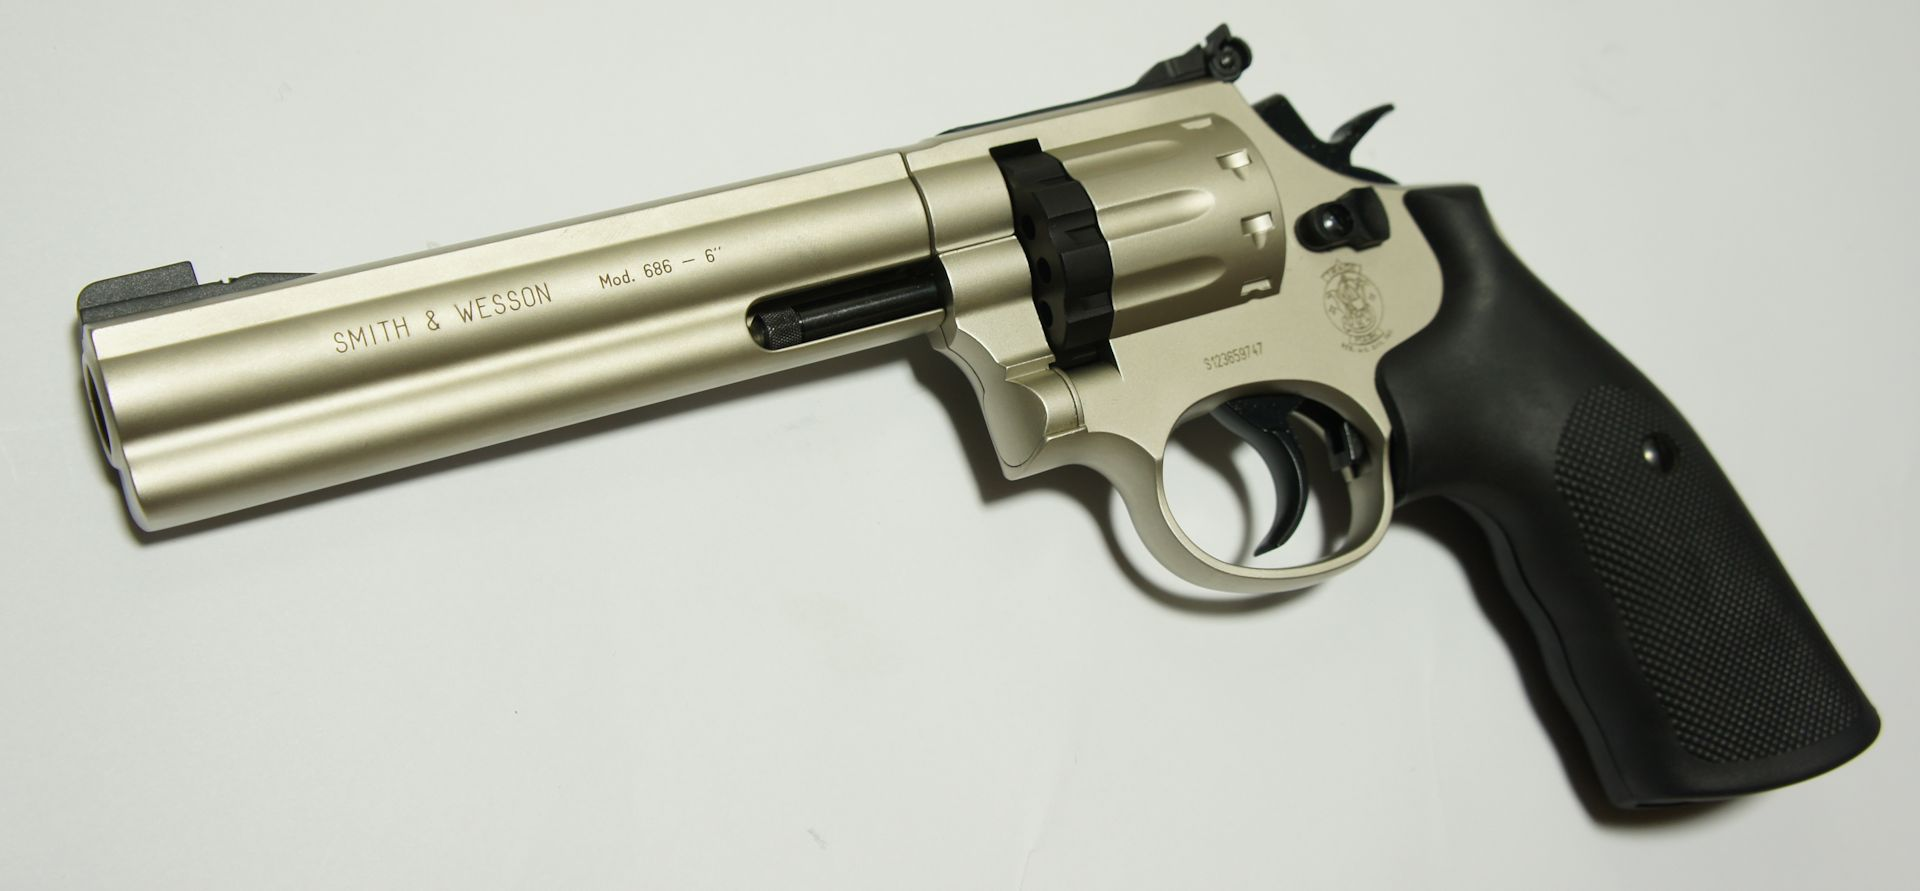 CO2 Revolver S&W 686 Nickel